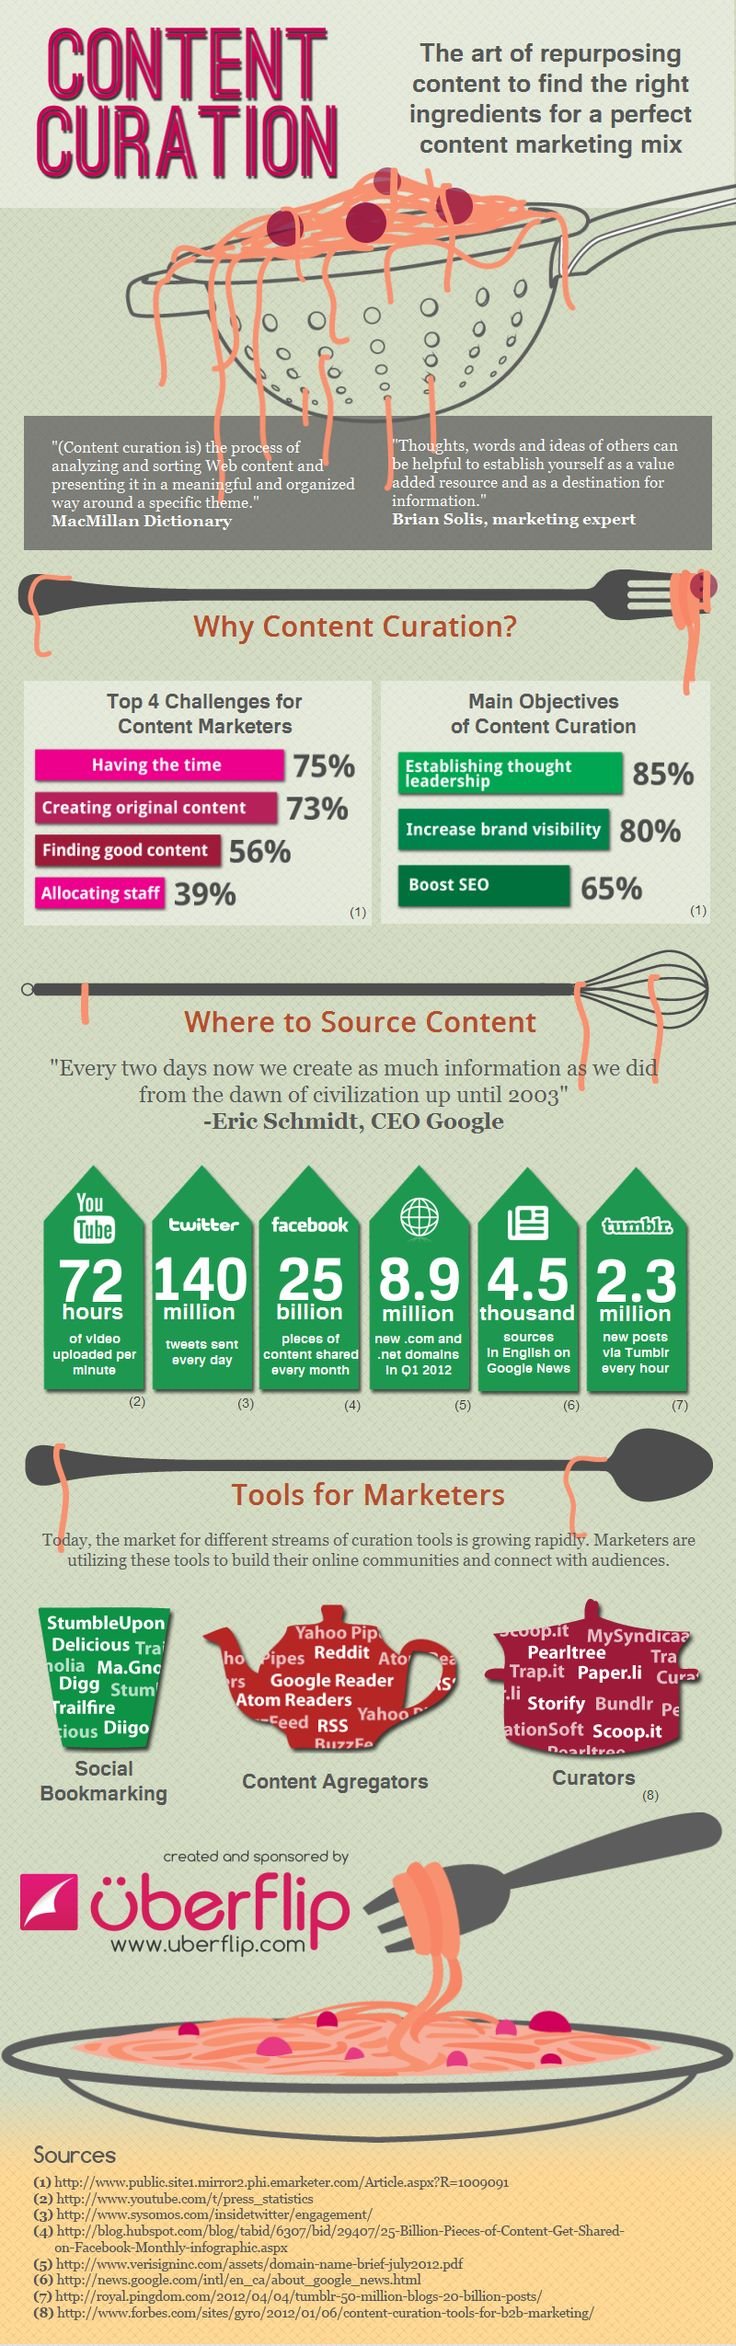 Pin by Candidwriter.com on Content Marketing Infographics Ideas And Tips | Pinterest | Content marketing, Content and Social media content